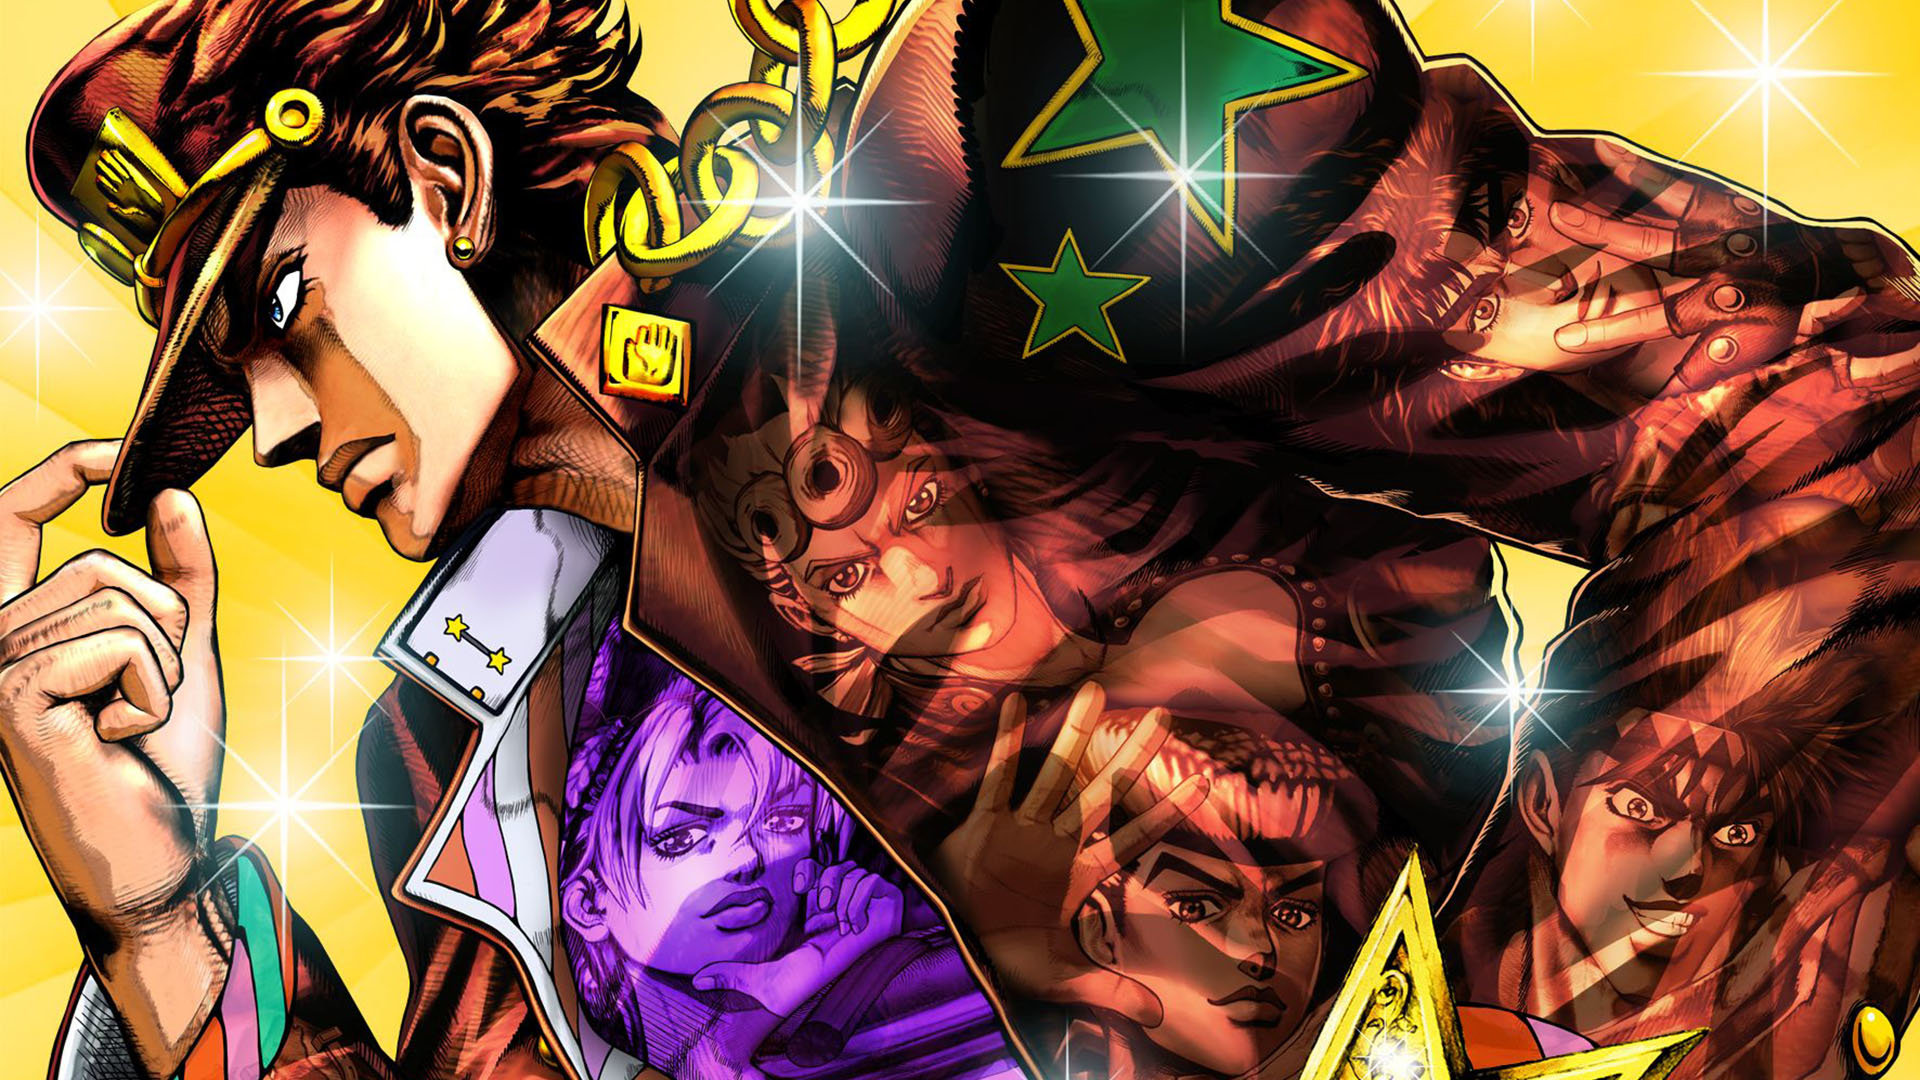 Download hd 1080p Jojo's Bizarre Adventure computer wallpaper ID:296953 for free